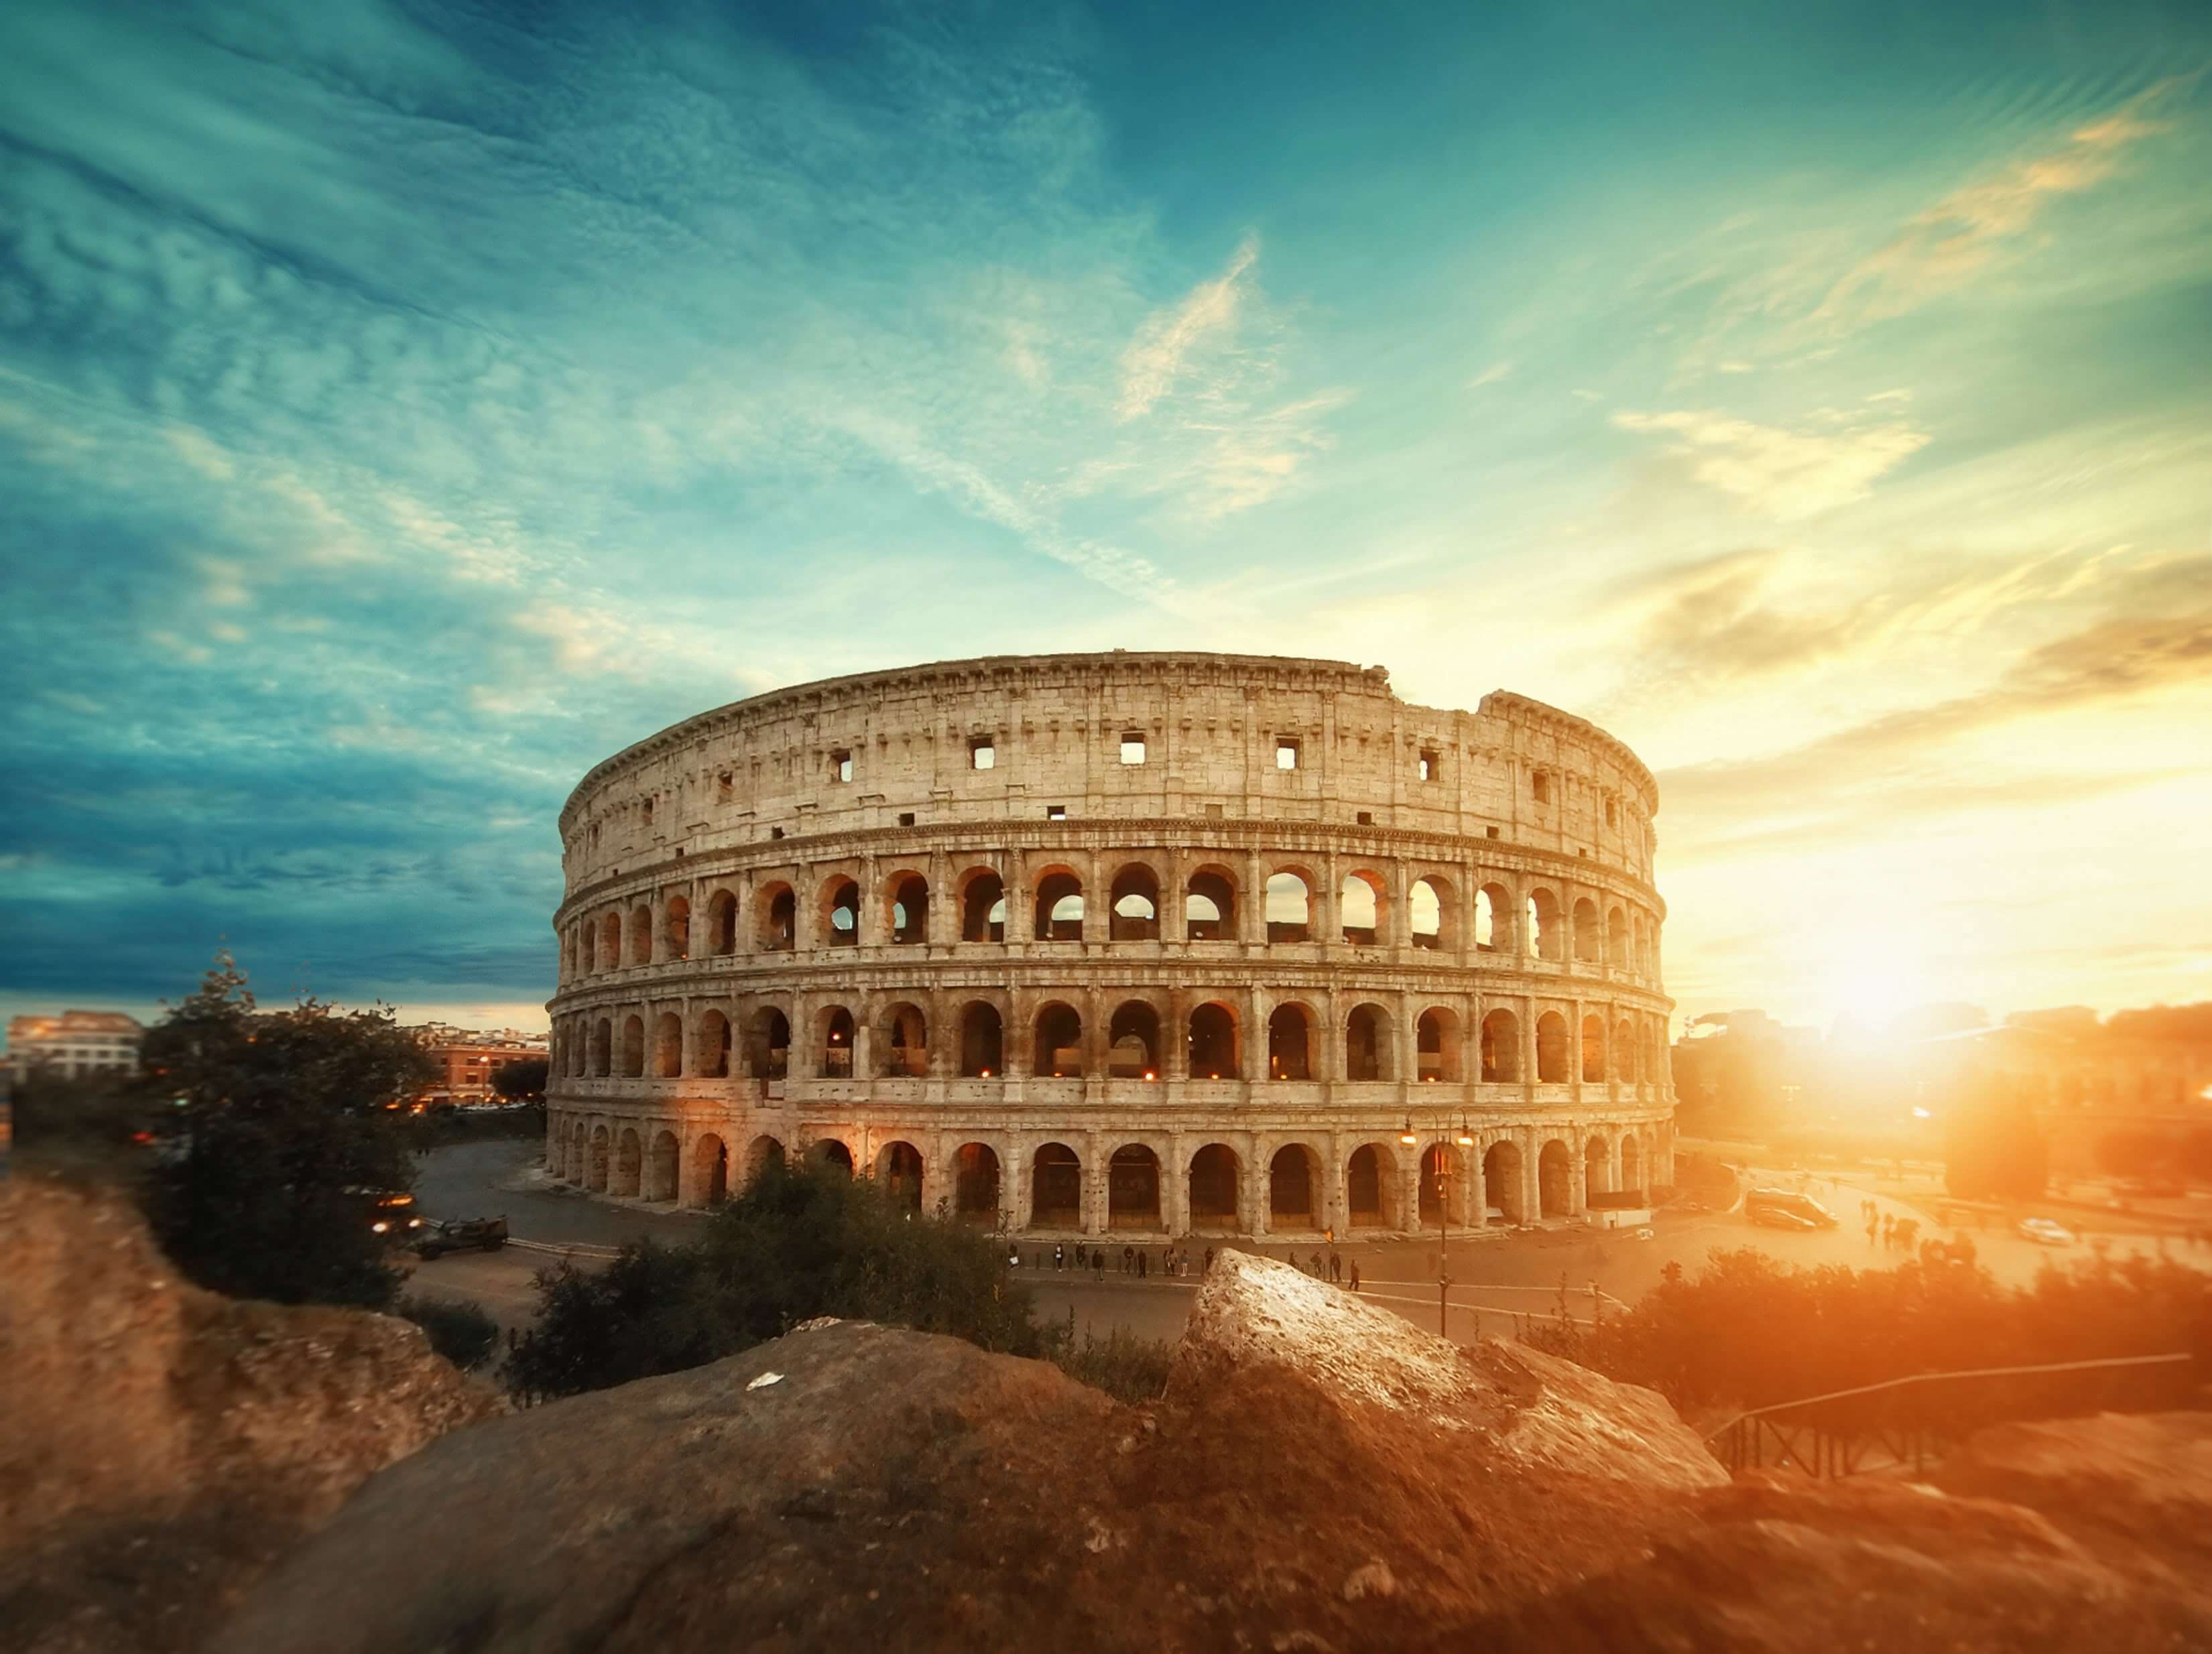 View of the Colosseum in Rome. Photo by Willian West on Unsplash